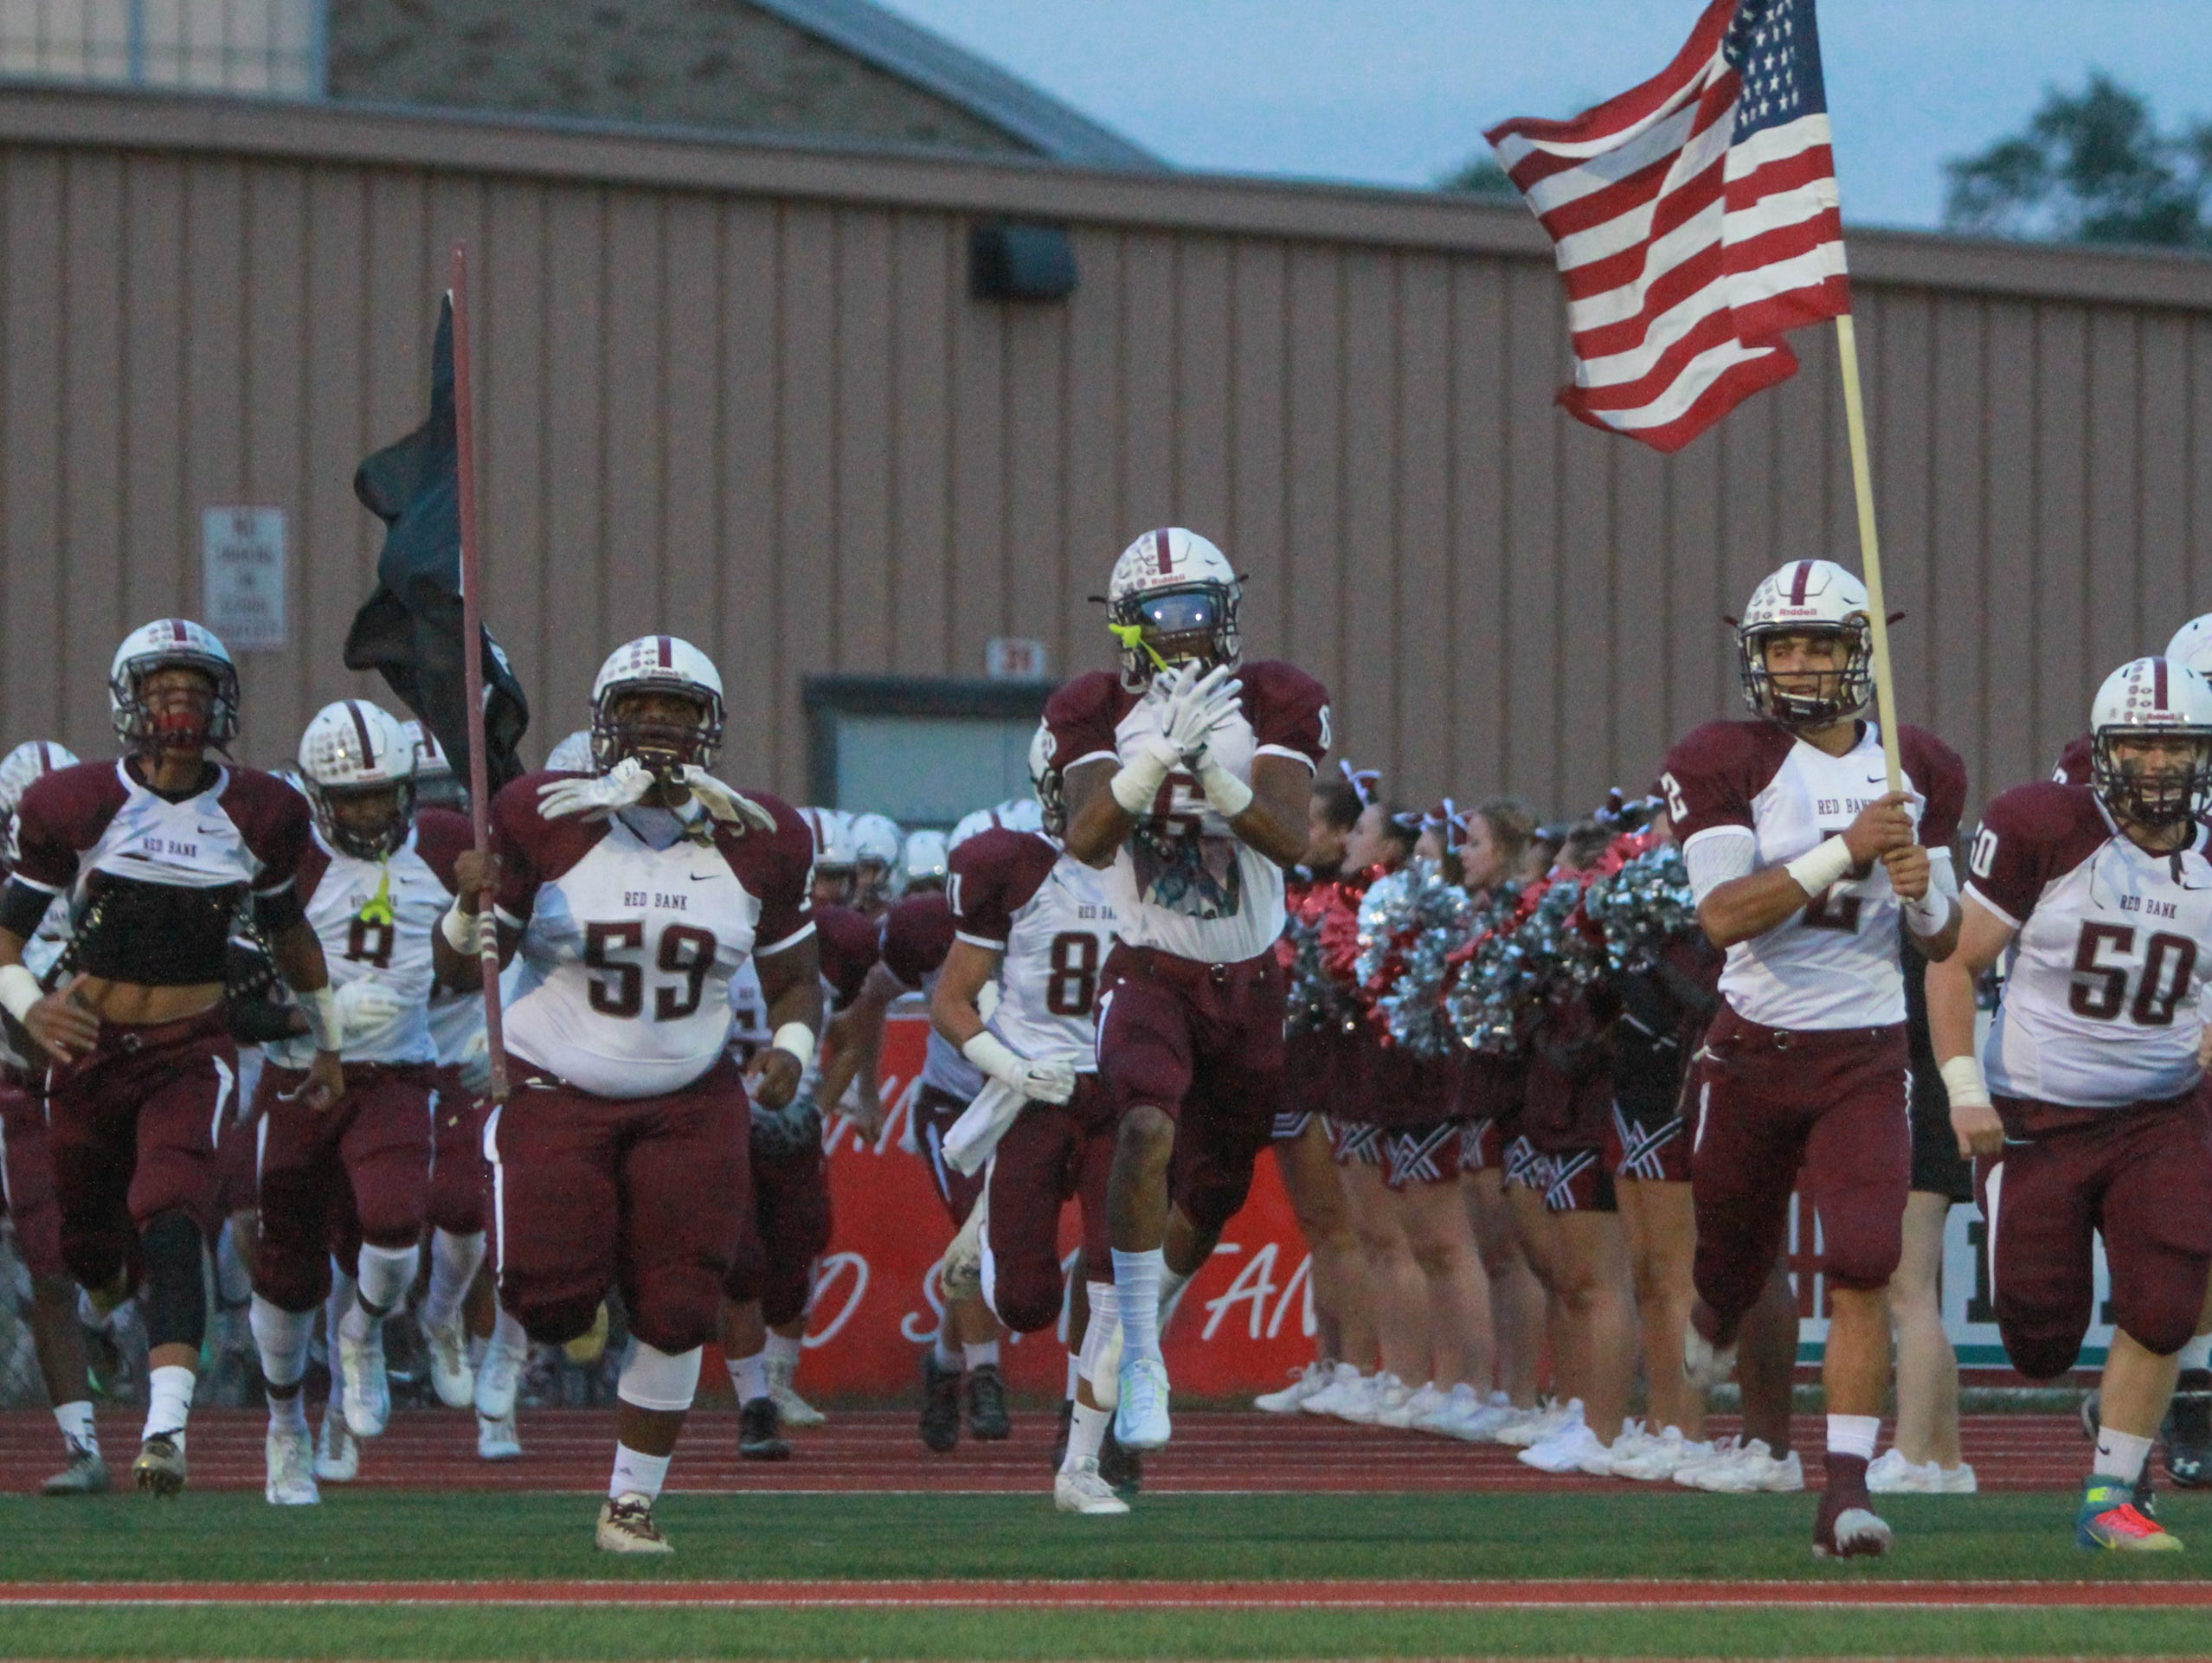 Ocean, NJ Red Bank at Ocean Friday night football. Red Bank enters the field 092415